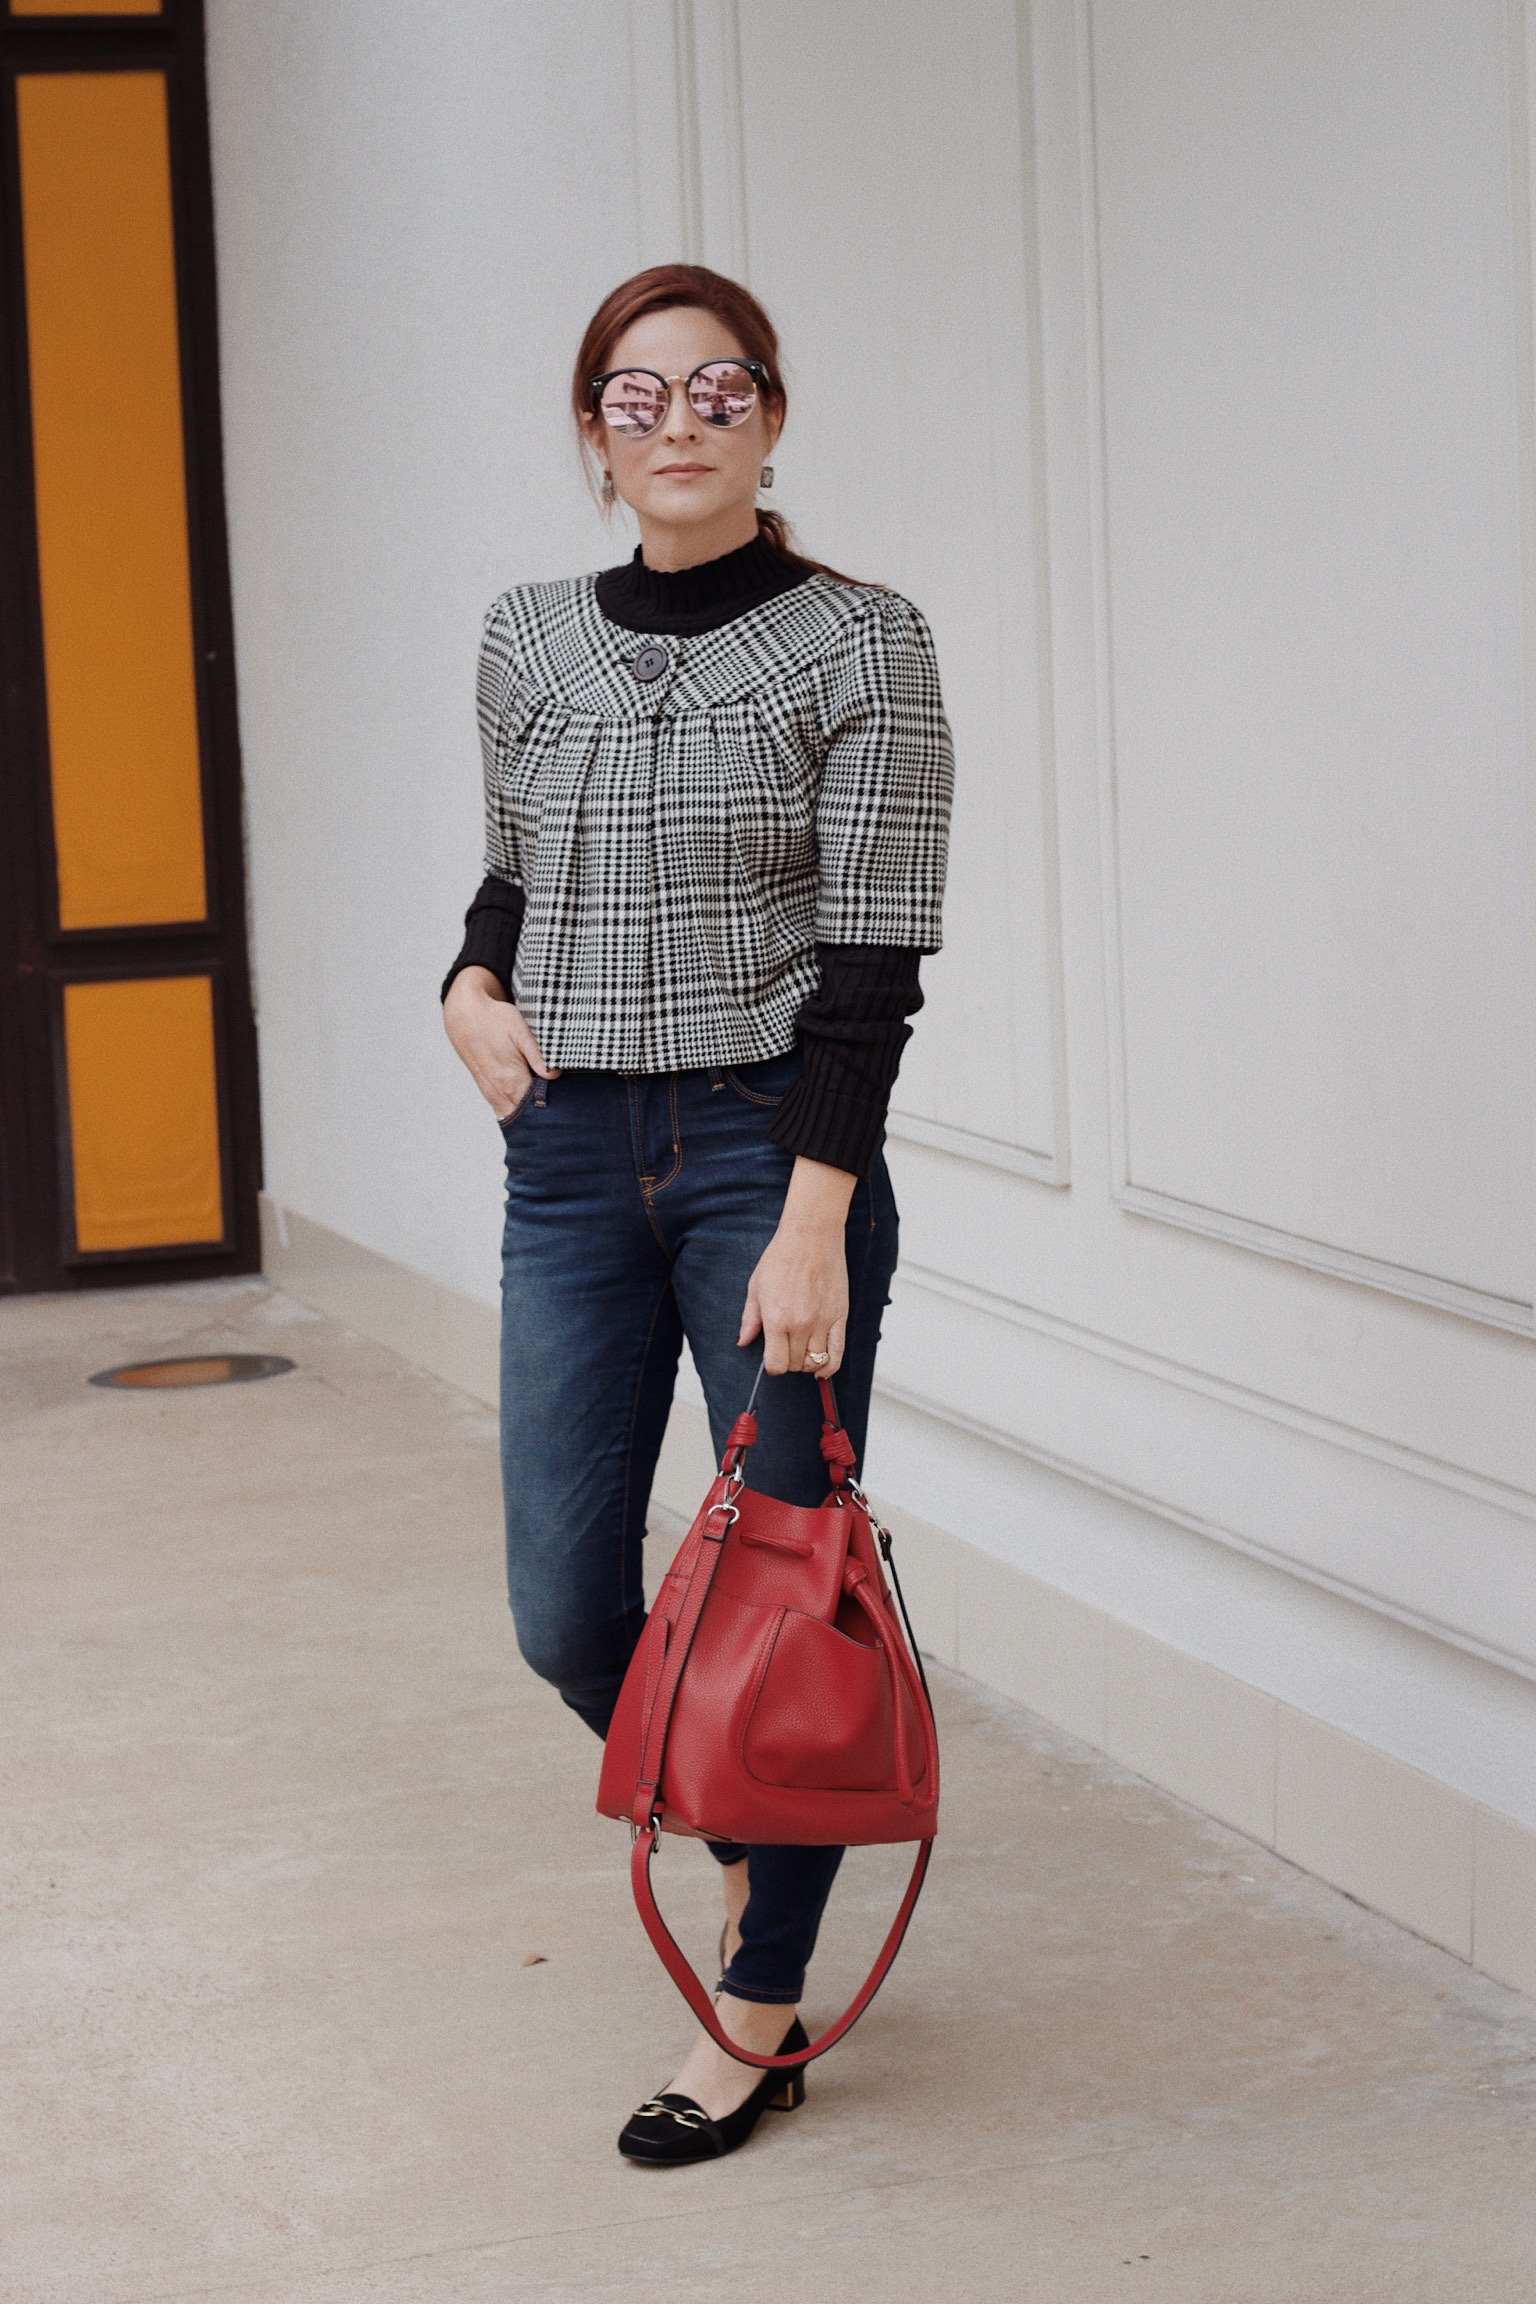 dark wash skinny jeans, houndstooth jacked outfits, loafers with jeans, red bag outfits, short sleeve jackets